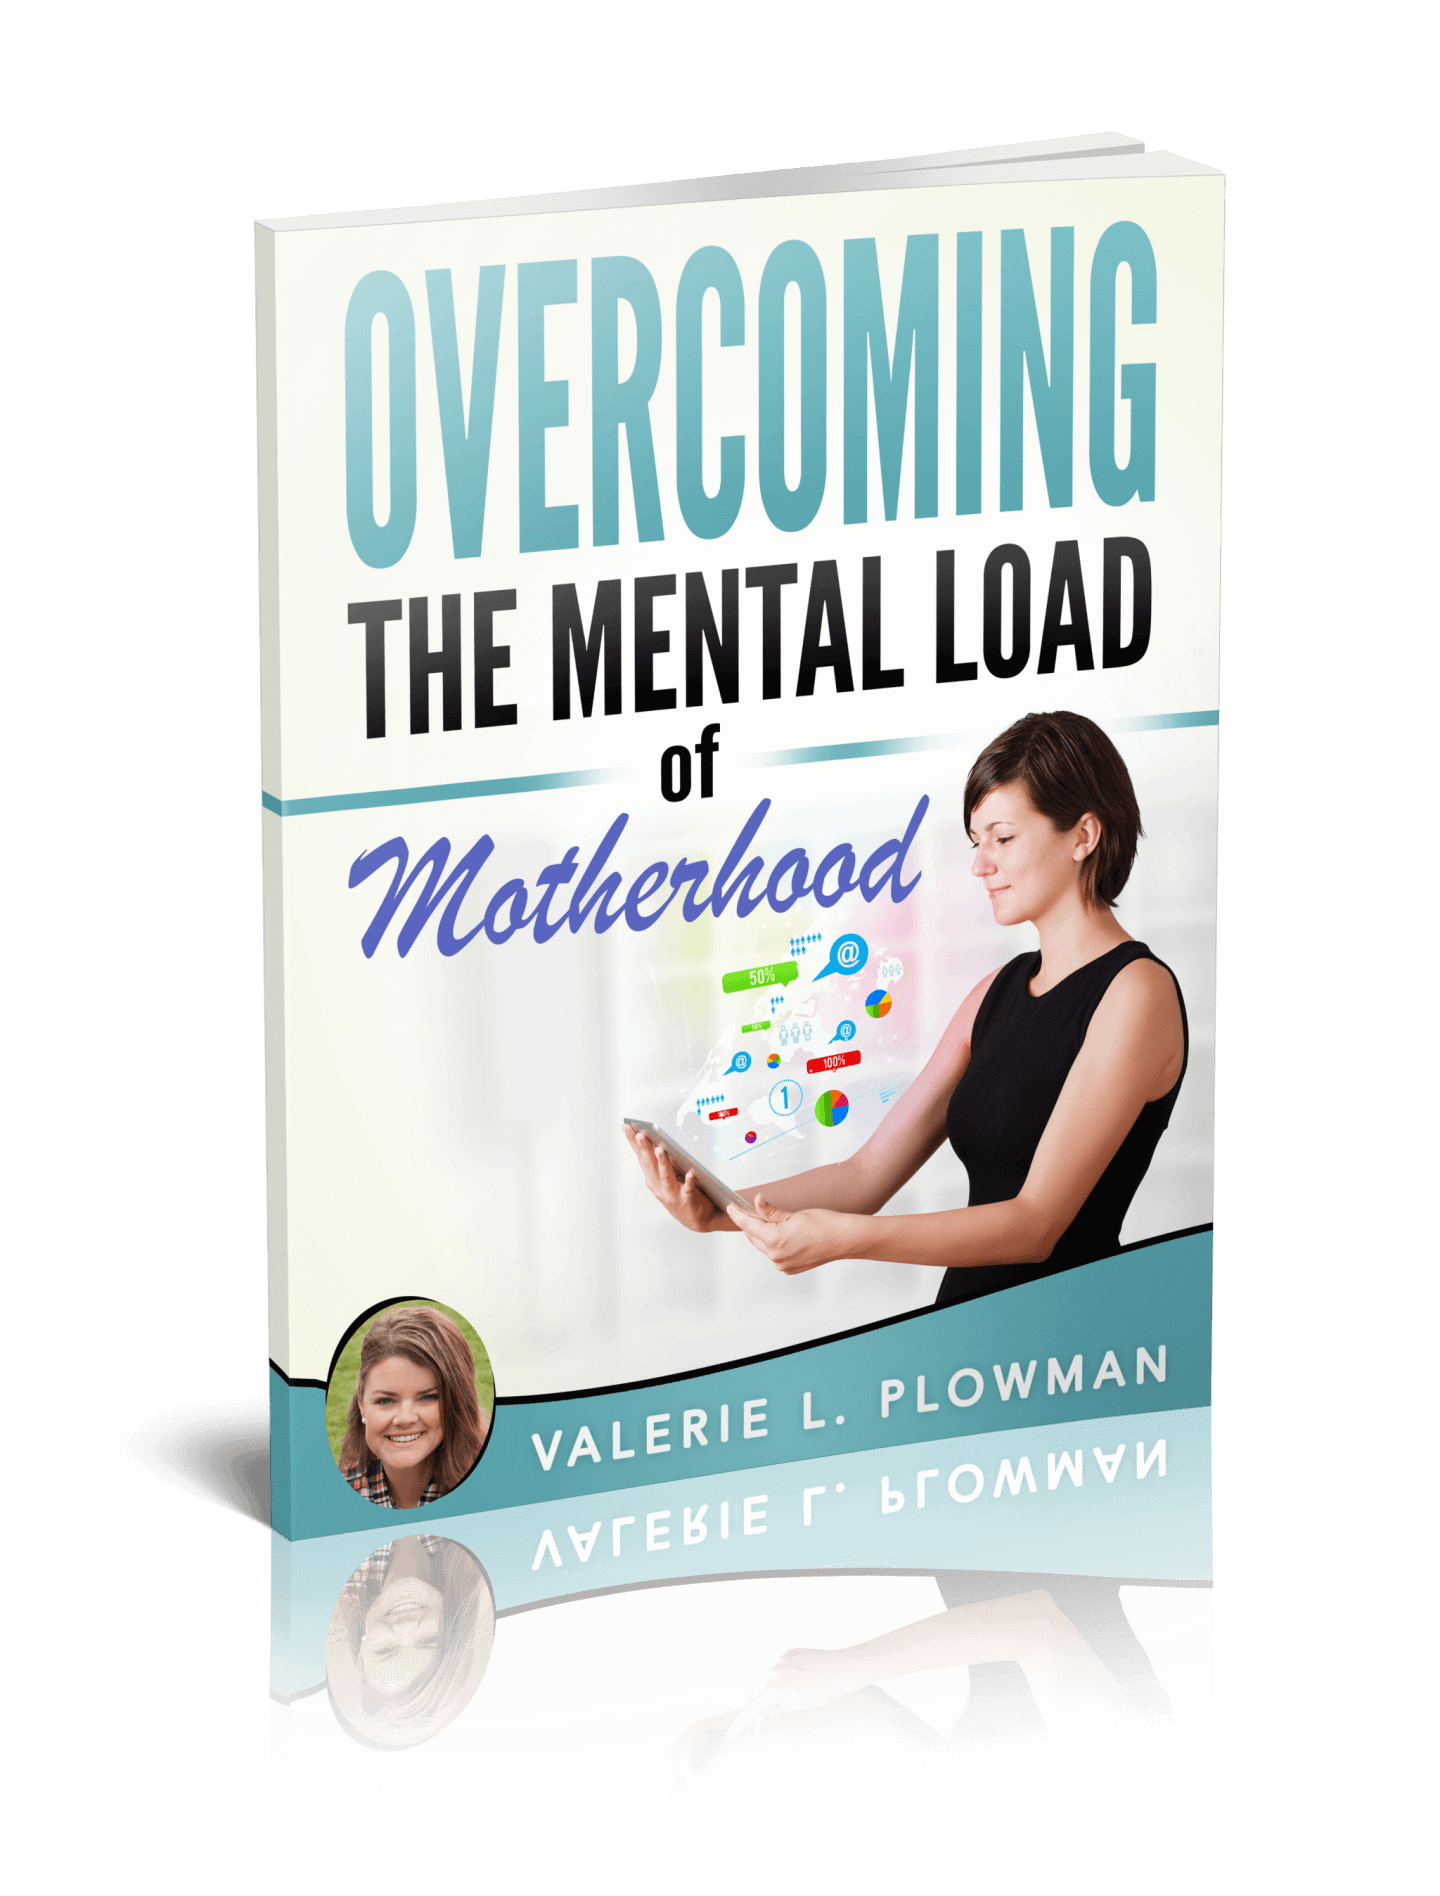 Overcoming the Mental Load of Motherhood. An eBook to help women manage the overwhelm of motherhood and life book cover